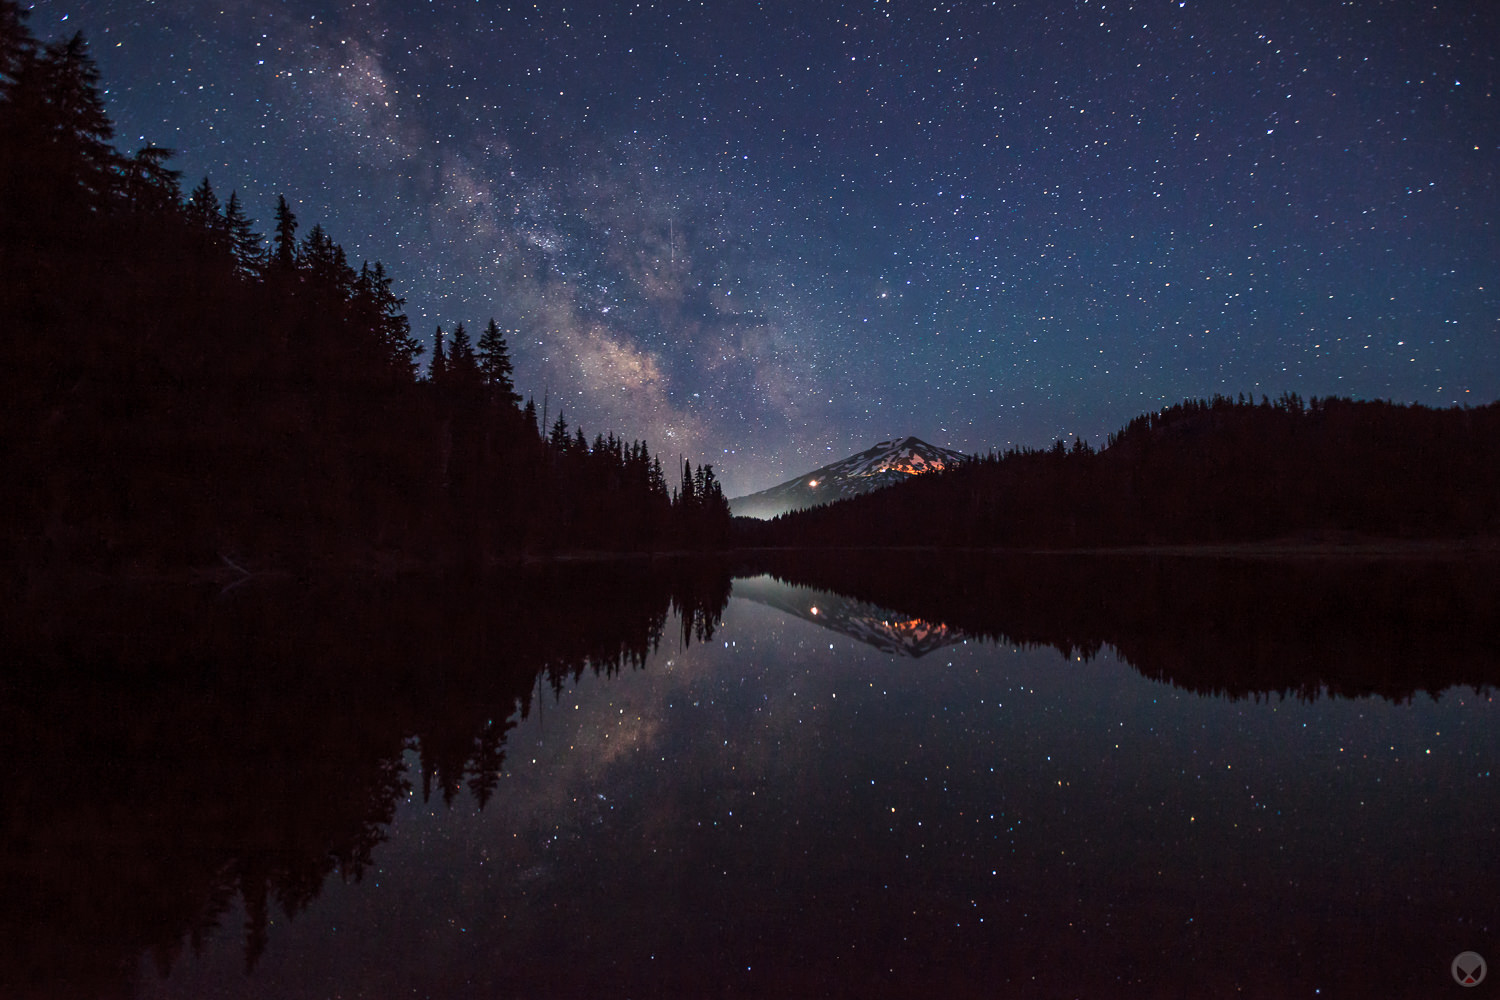 The Milky Way lands in the parking lot of Mount Bachelor's ski resort and is reflected in Todd Lake.